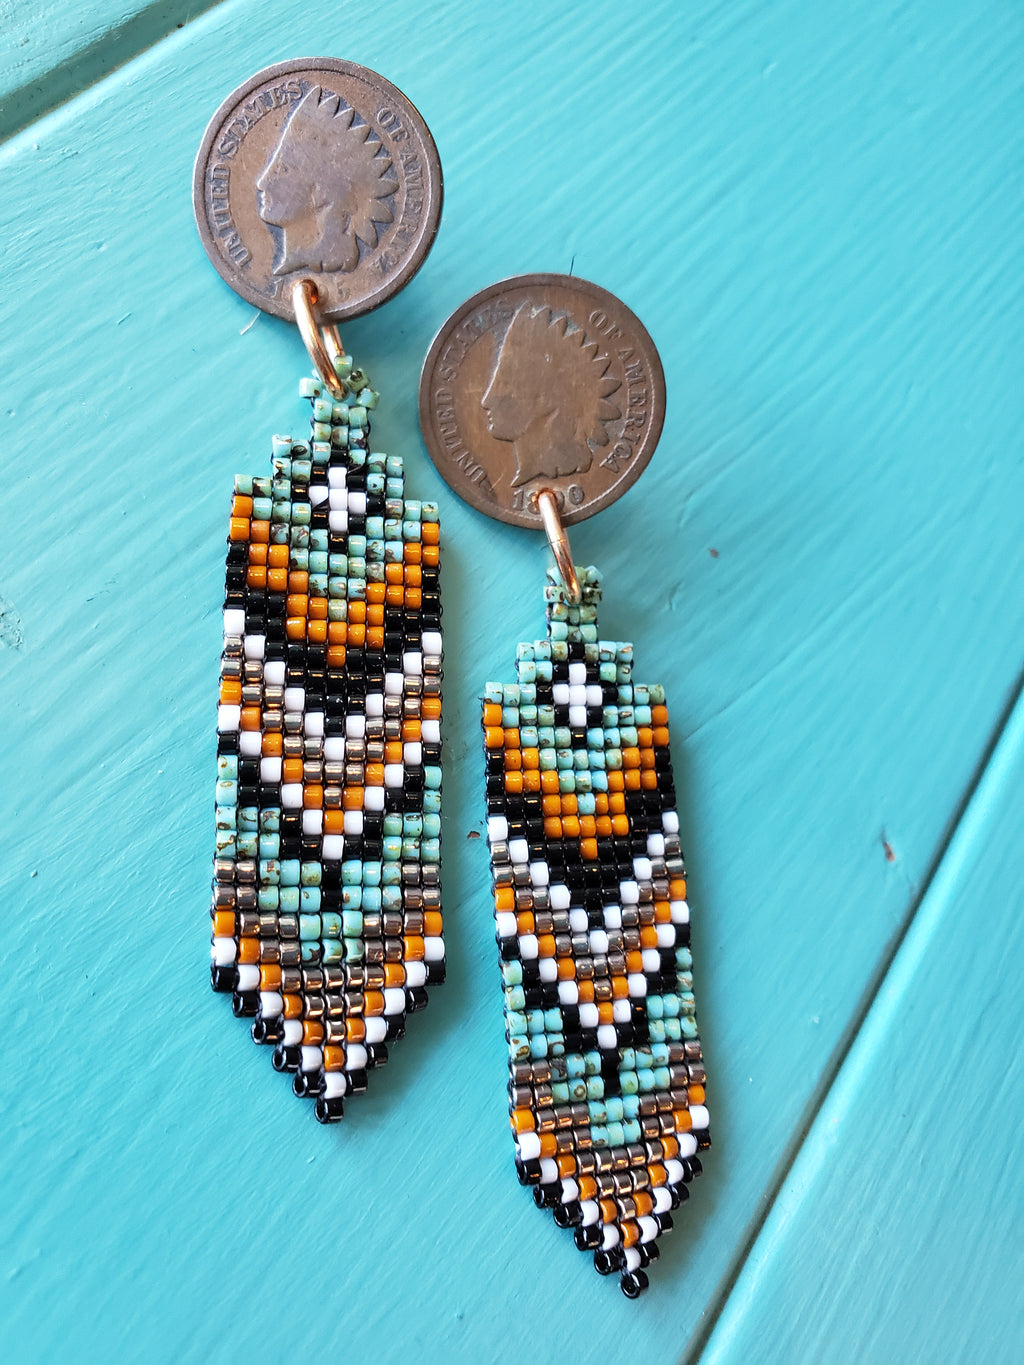 Indian Penny Stud Earrings w/ Loom Beadwork